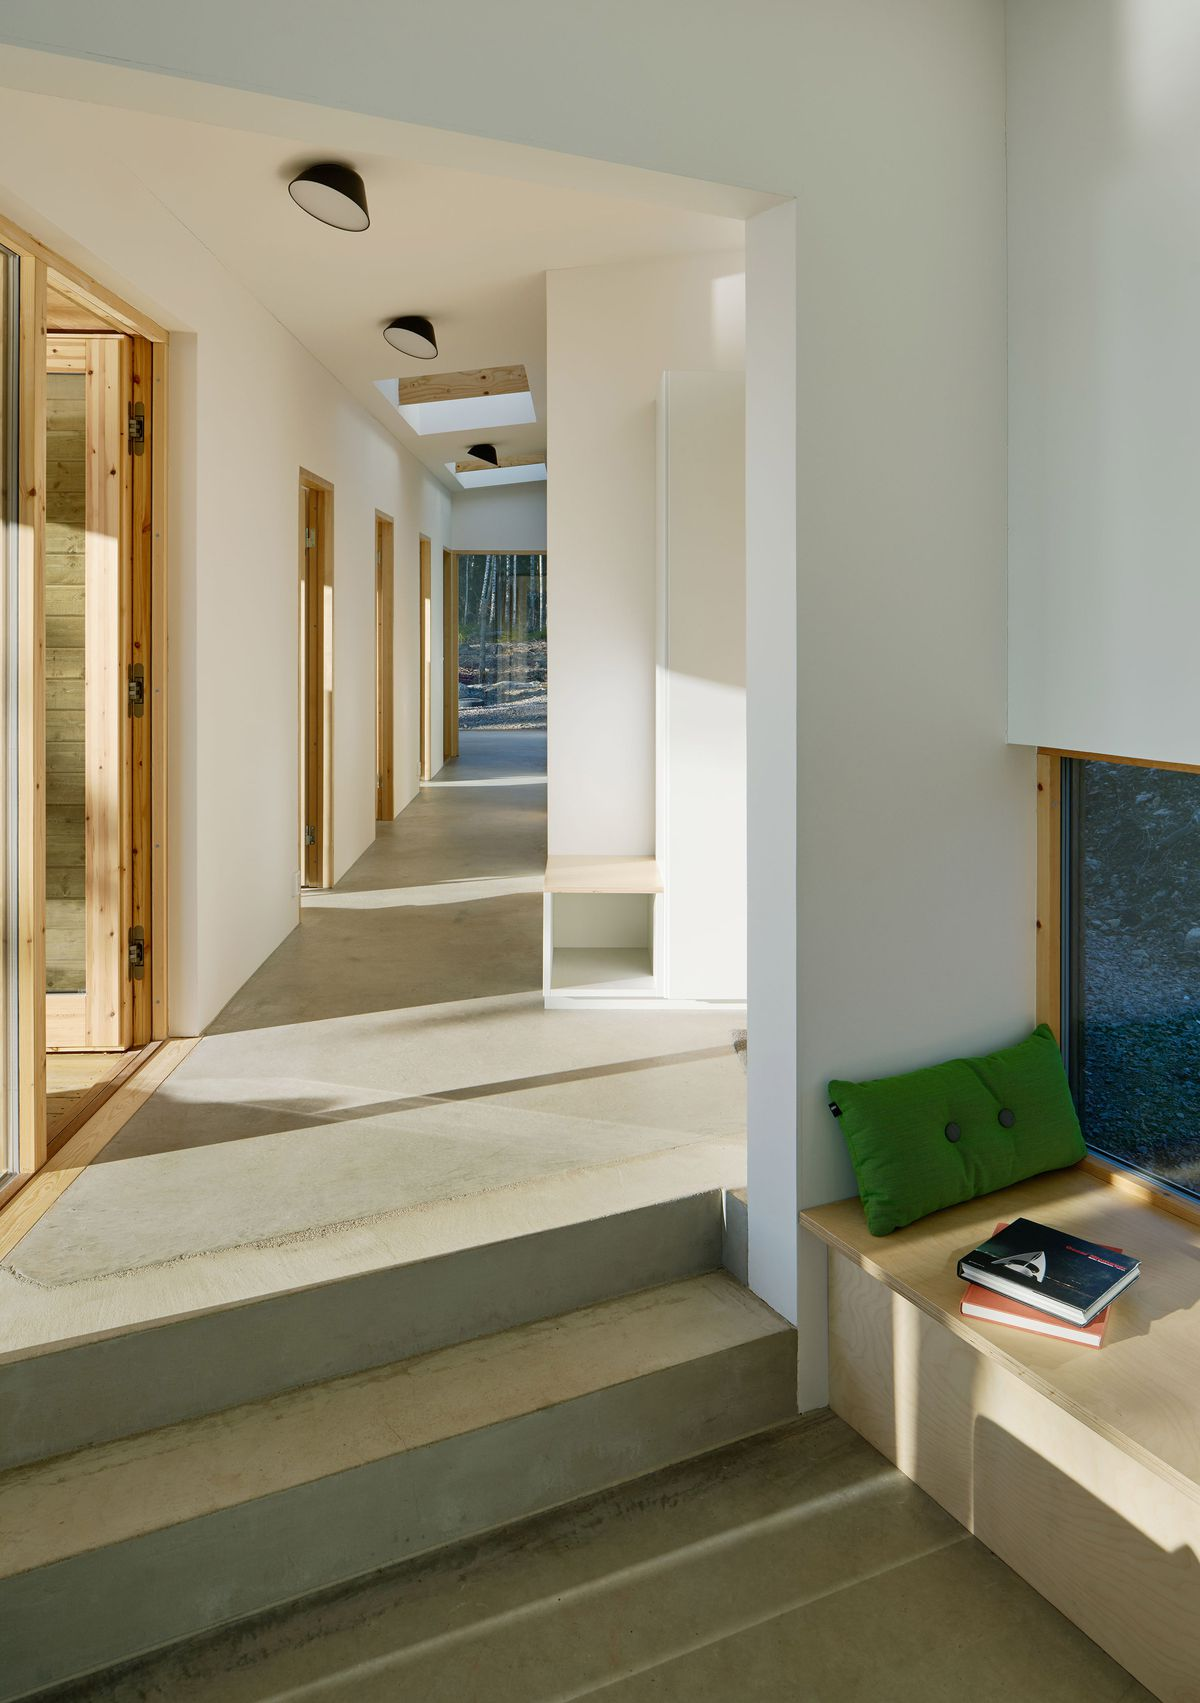 Concrete hallway next to built-in seating nook